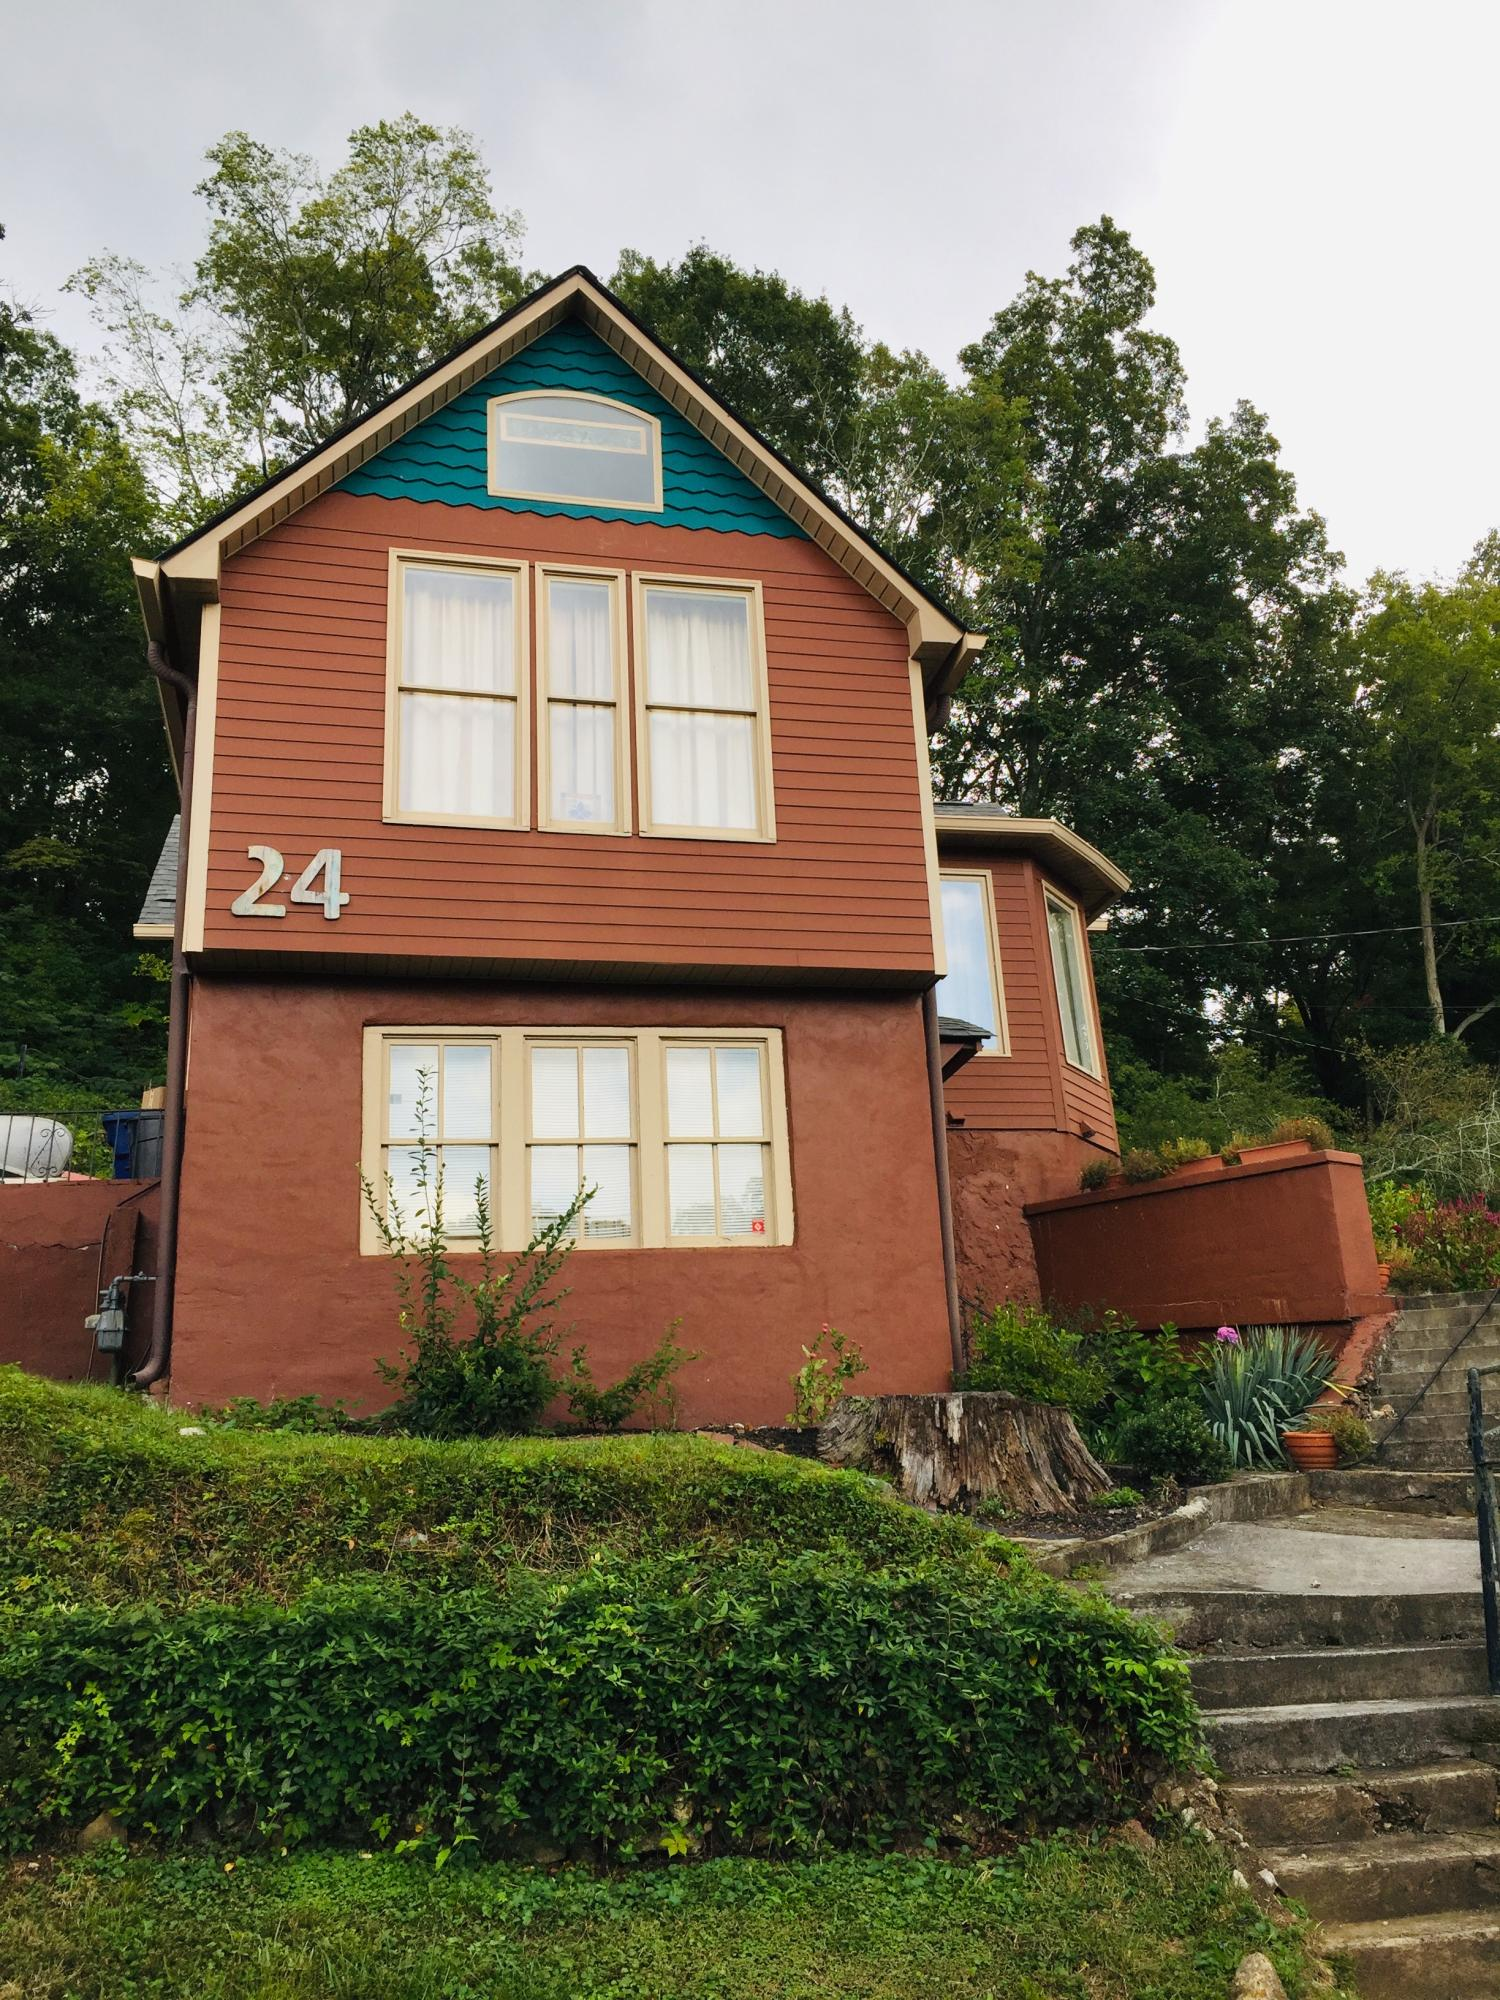 Details for 24 Shallowford, Chattanooga, TN 37404